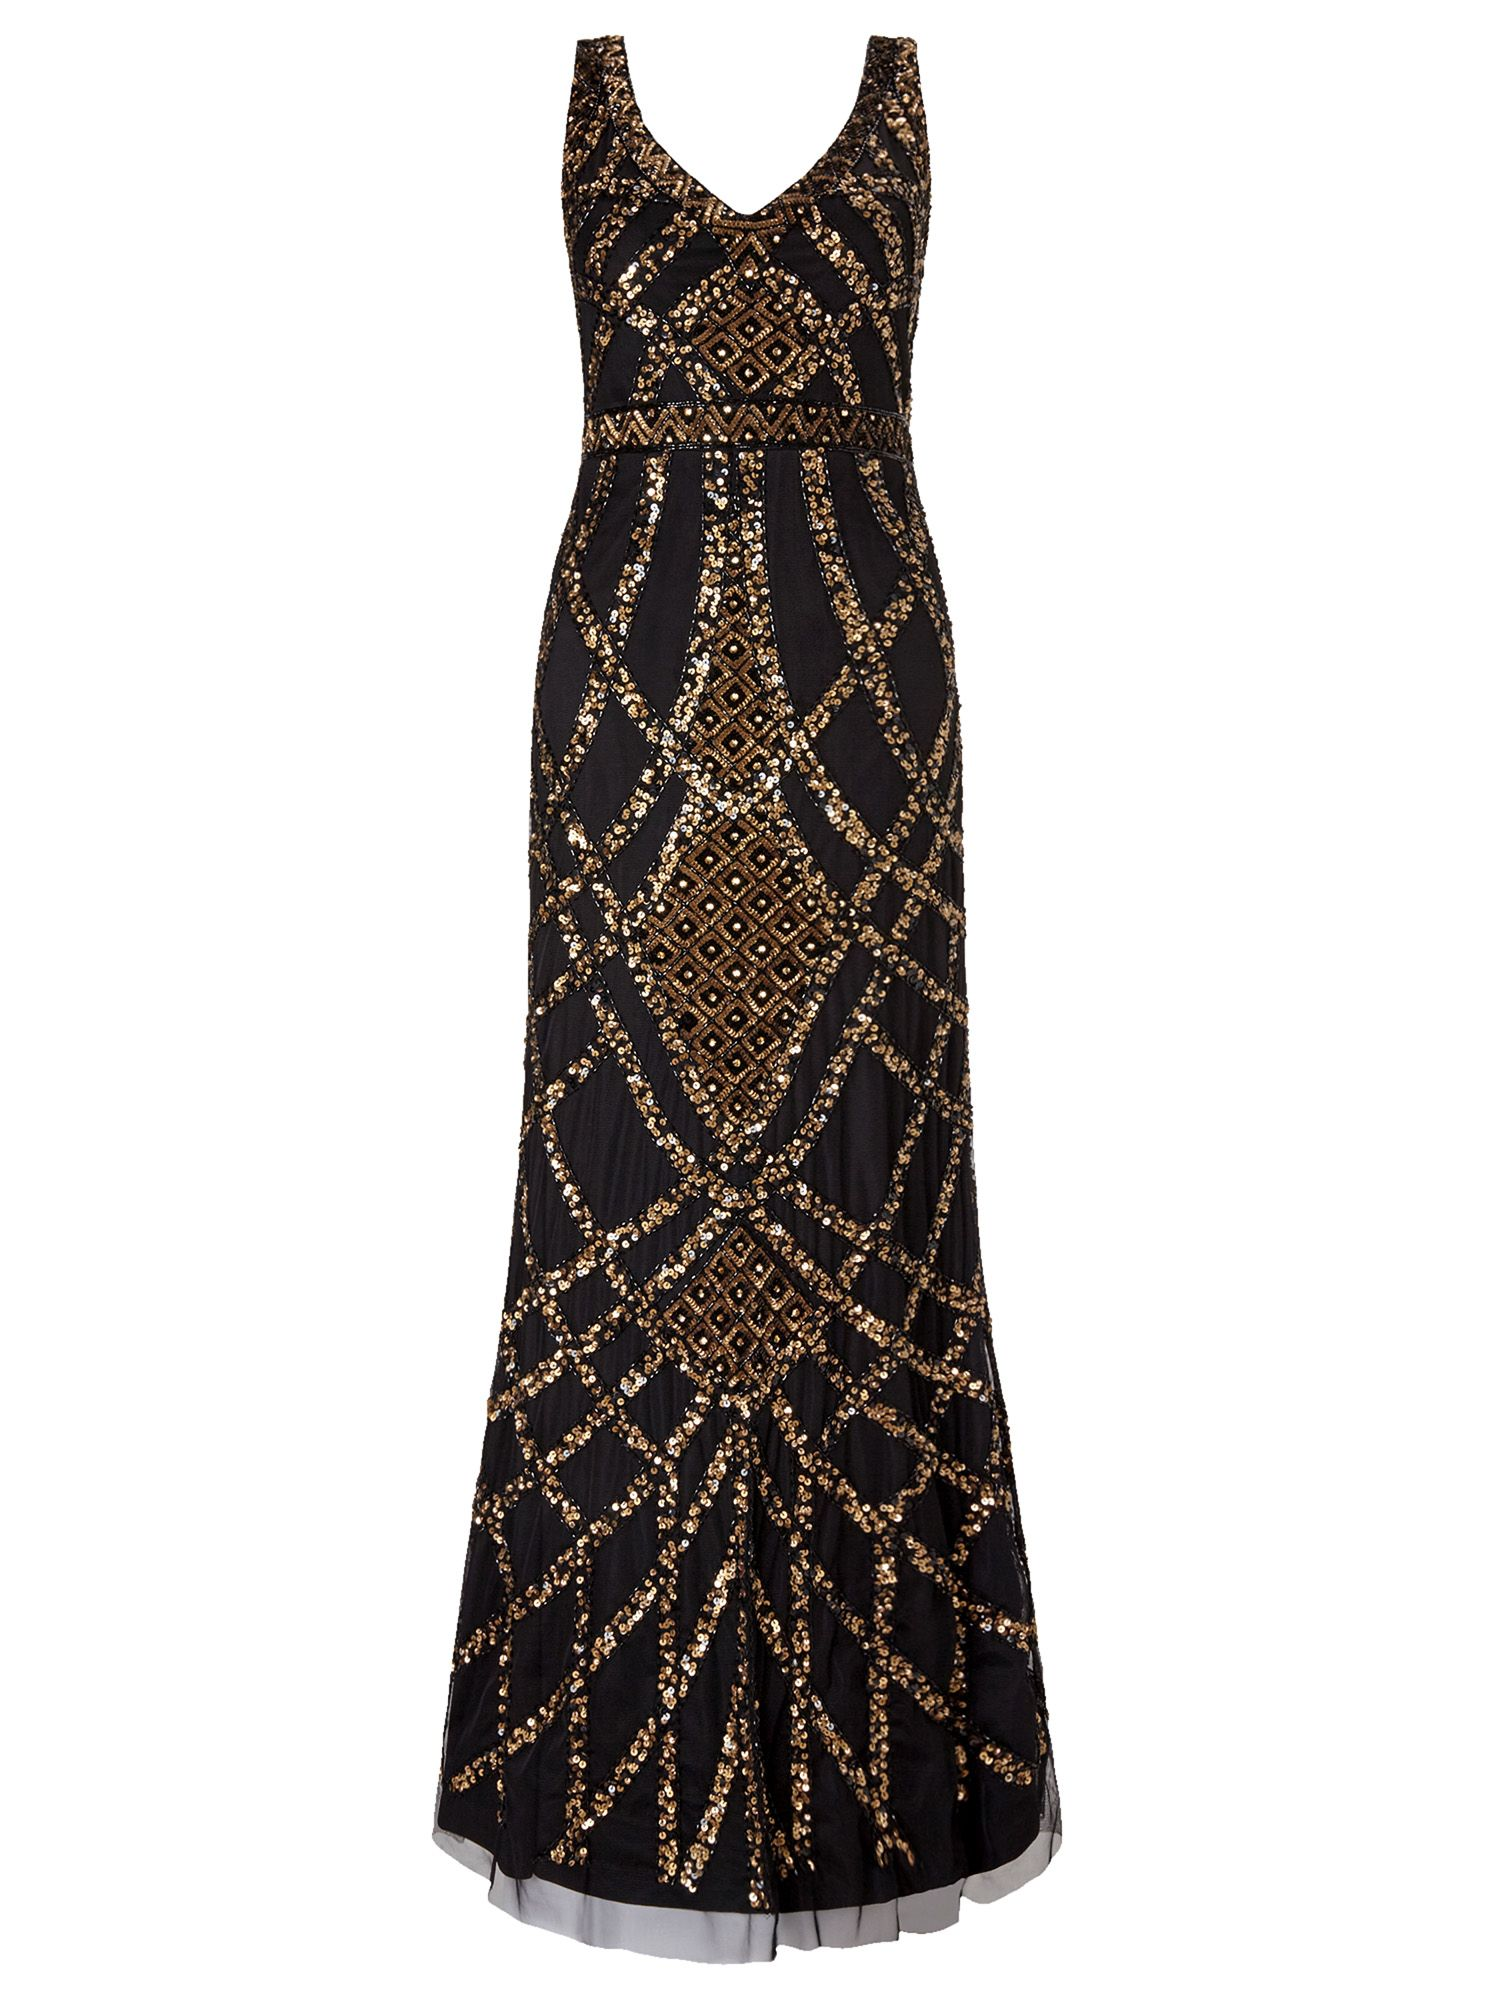 Ariella Nahla Full Length Beaded Evening Gown $349.00 AT vintagedancer.com